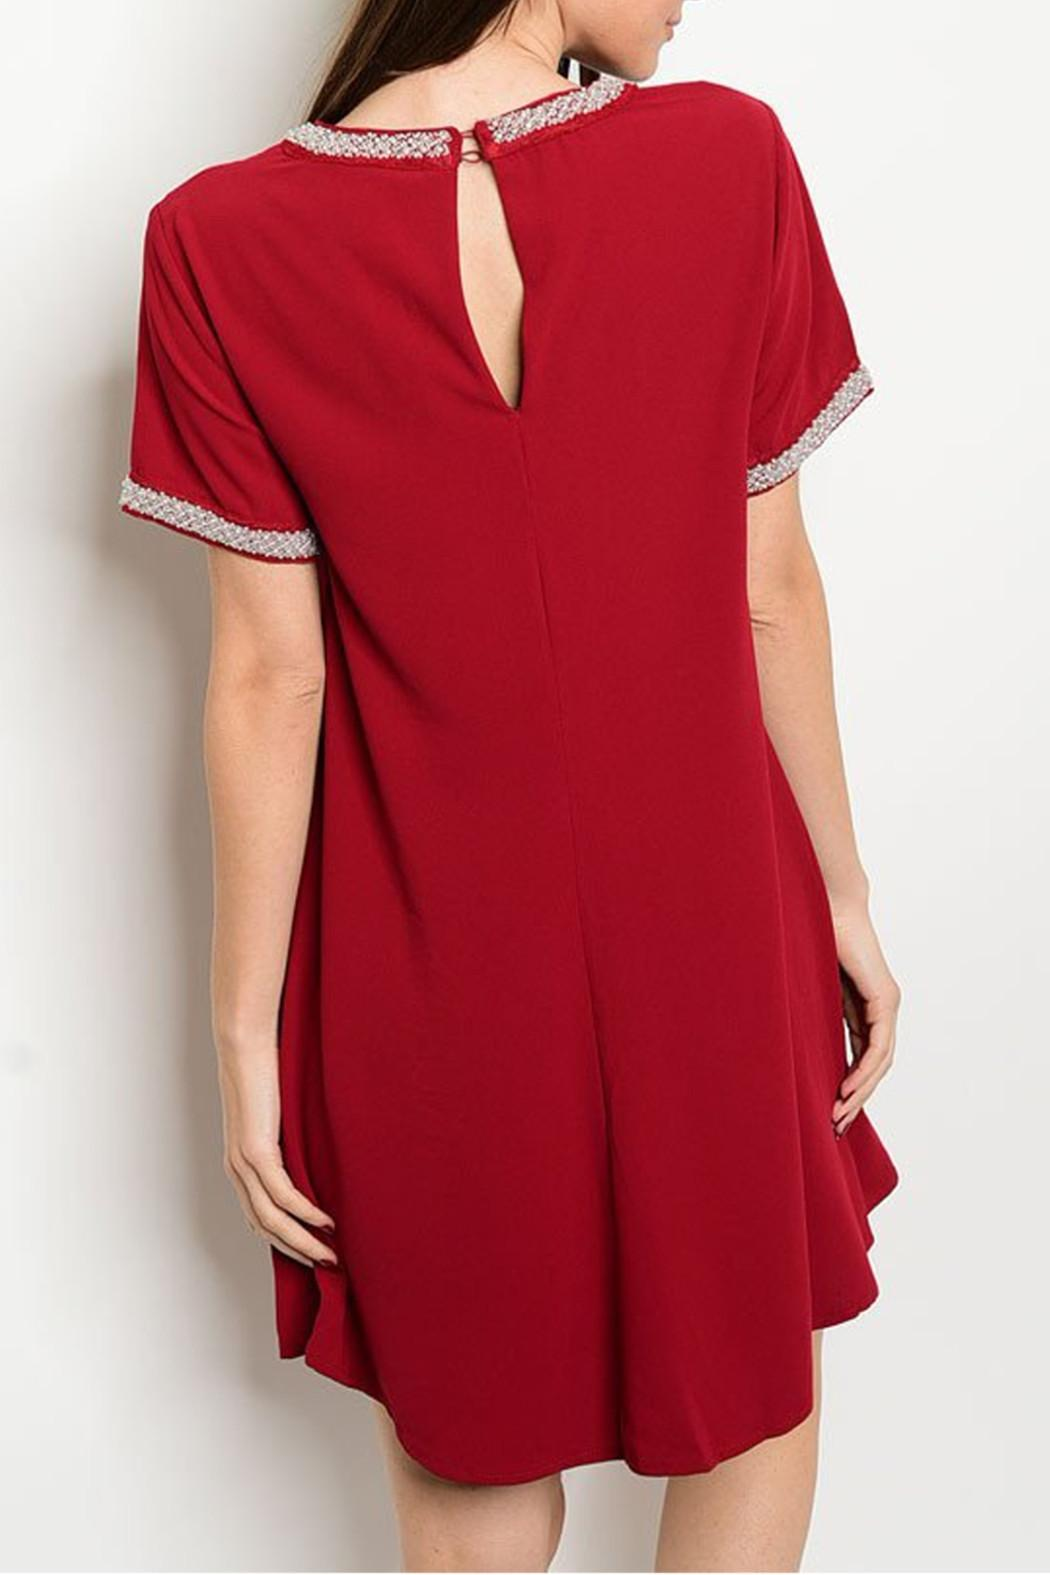 LoveRiche Red Beaded Dress - Front Full Image